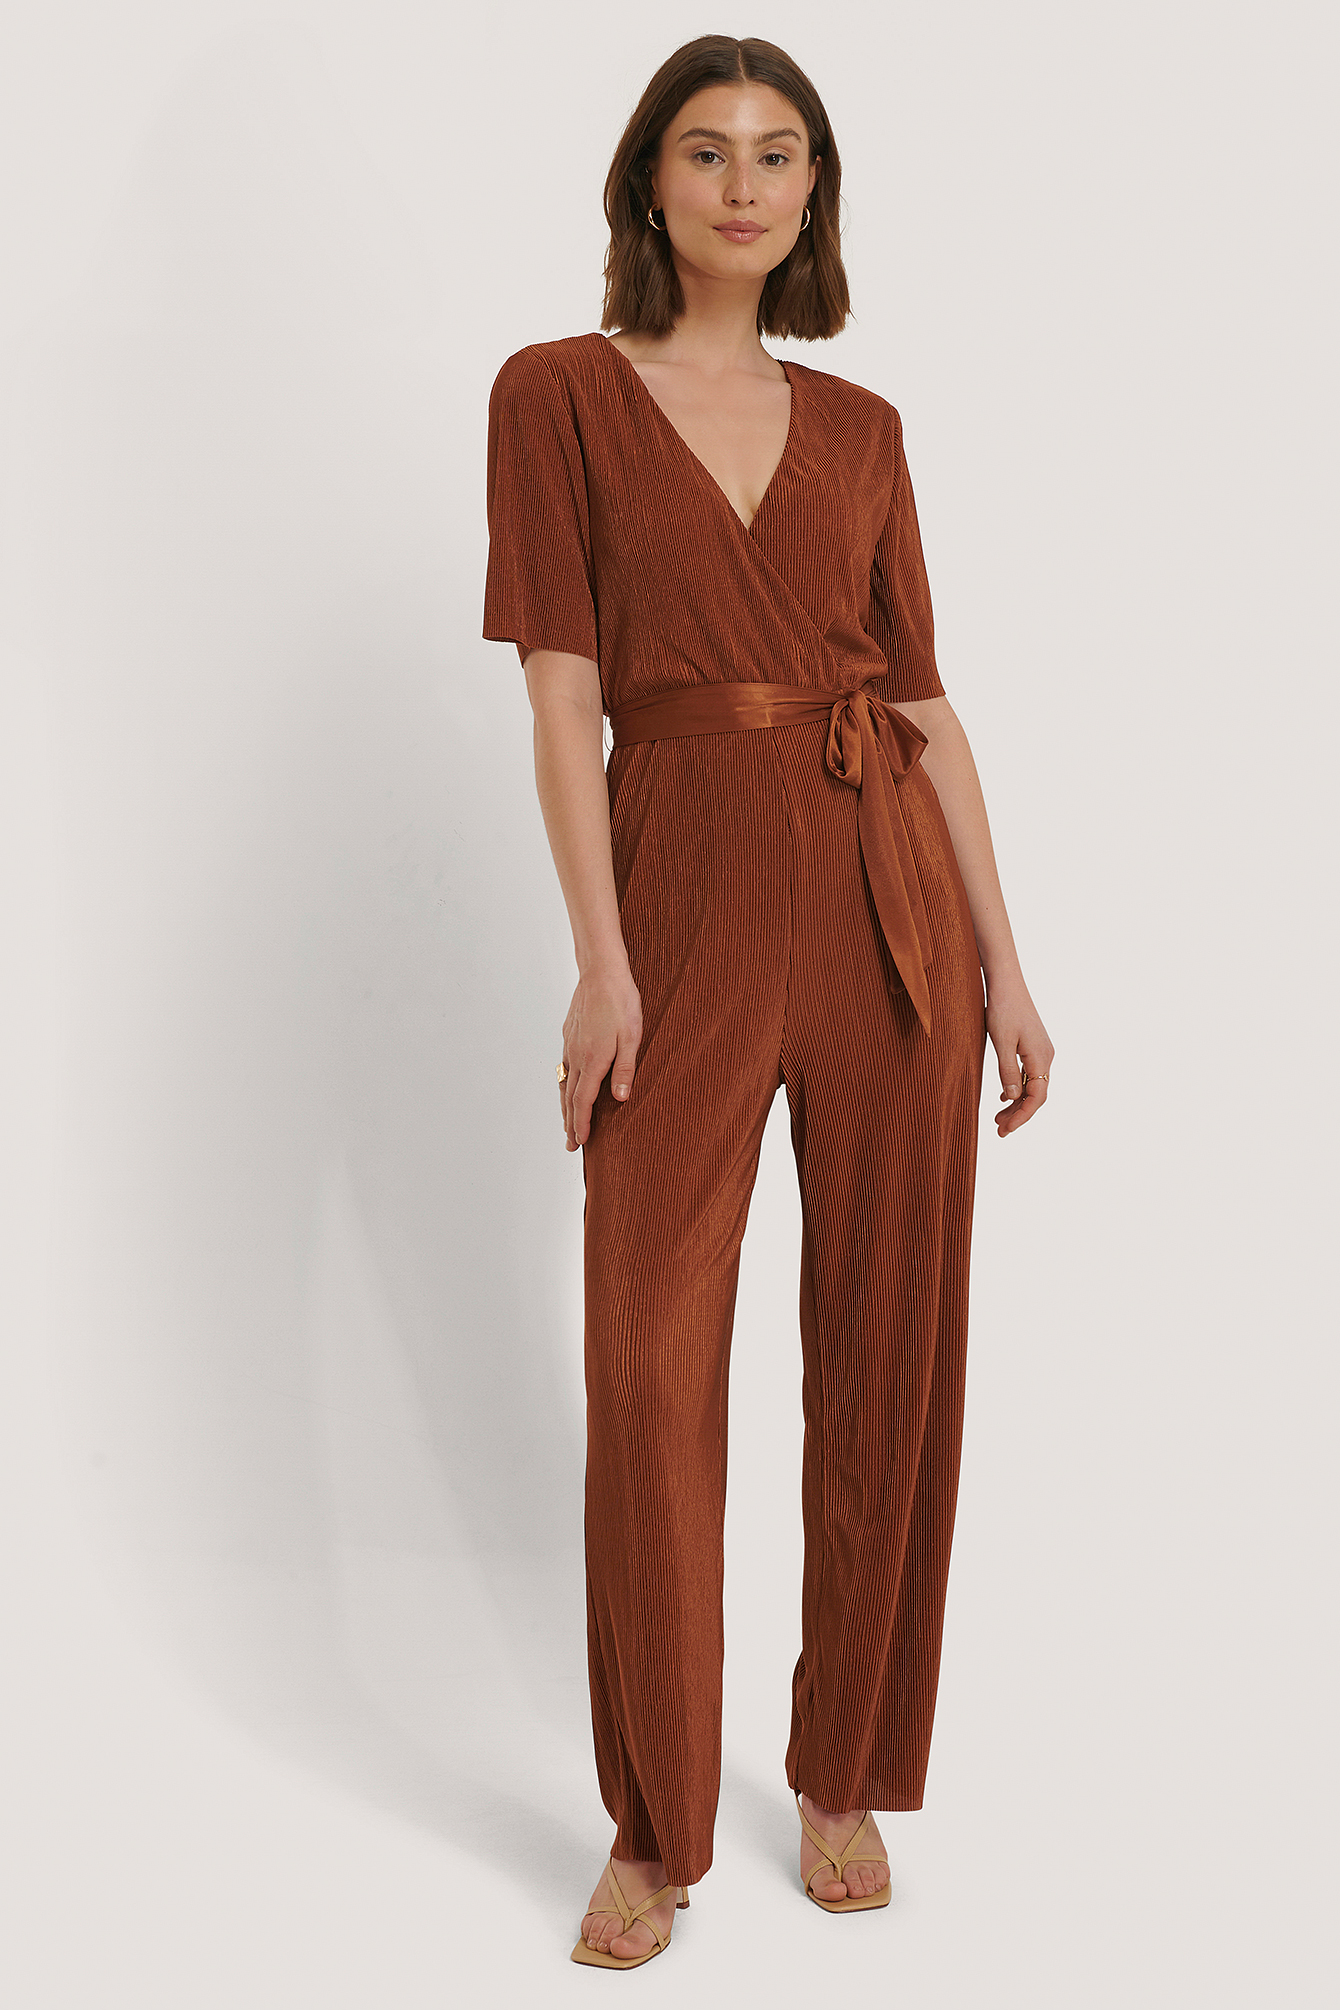 Rust Pleated Tie Jumpsuit